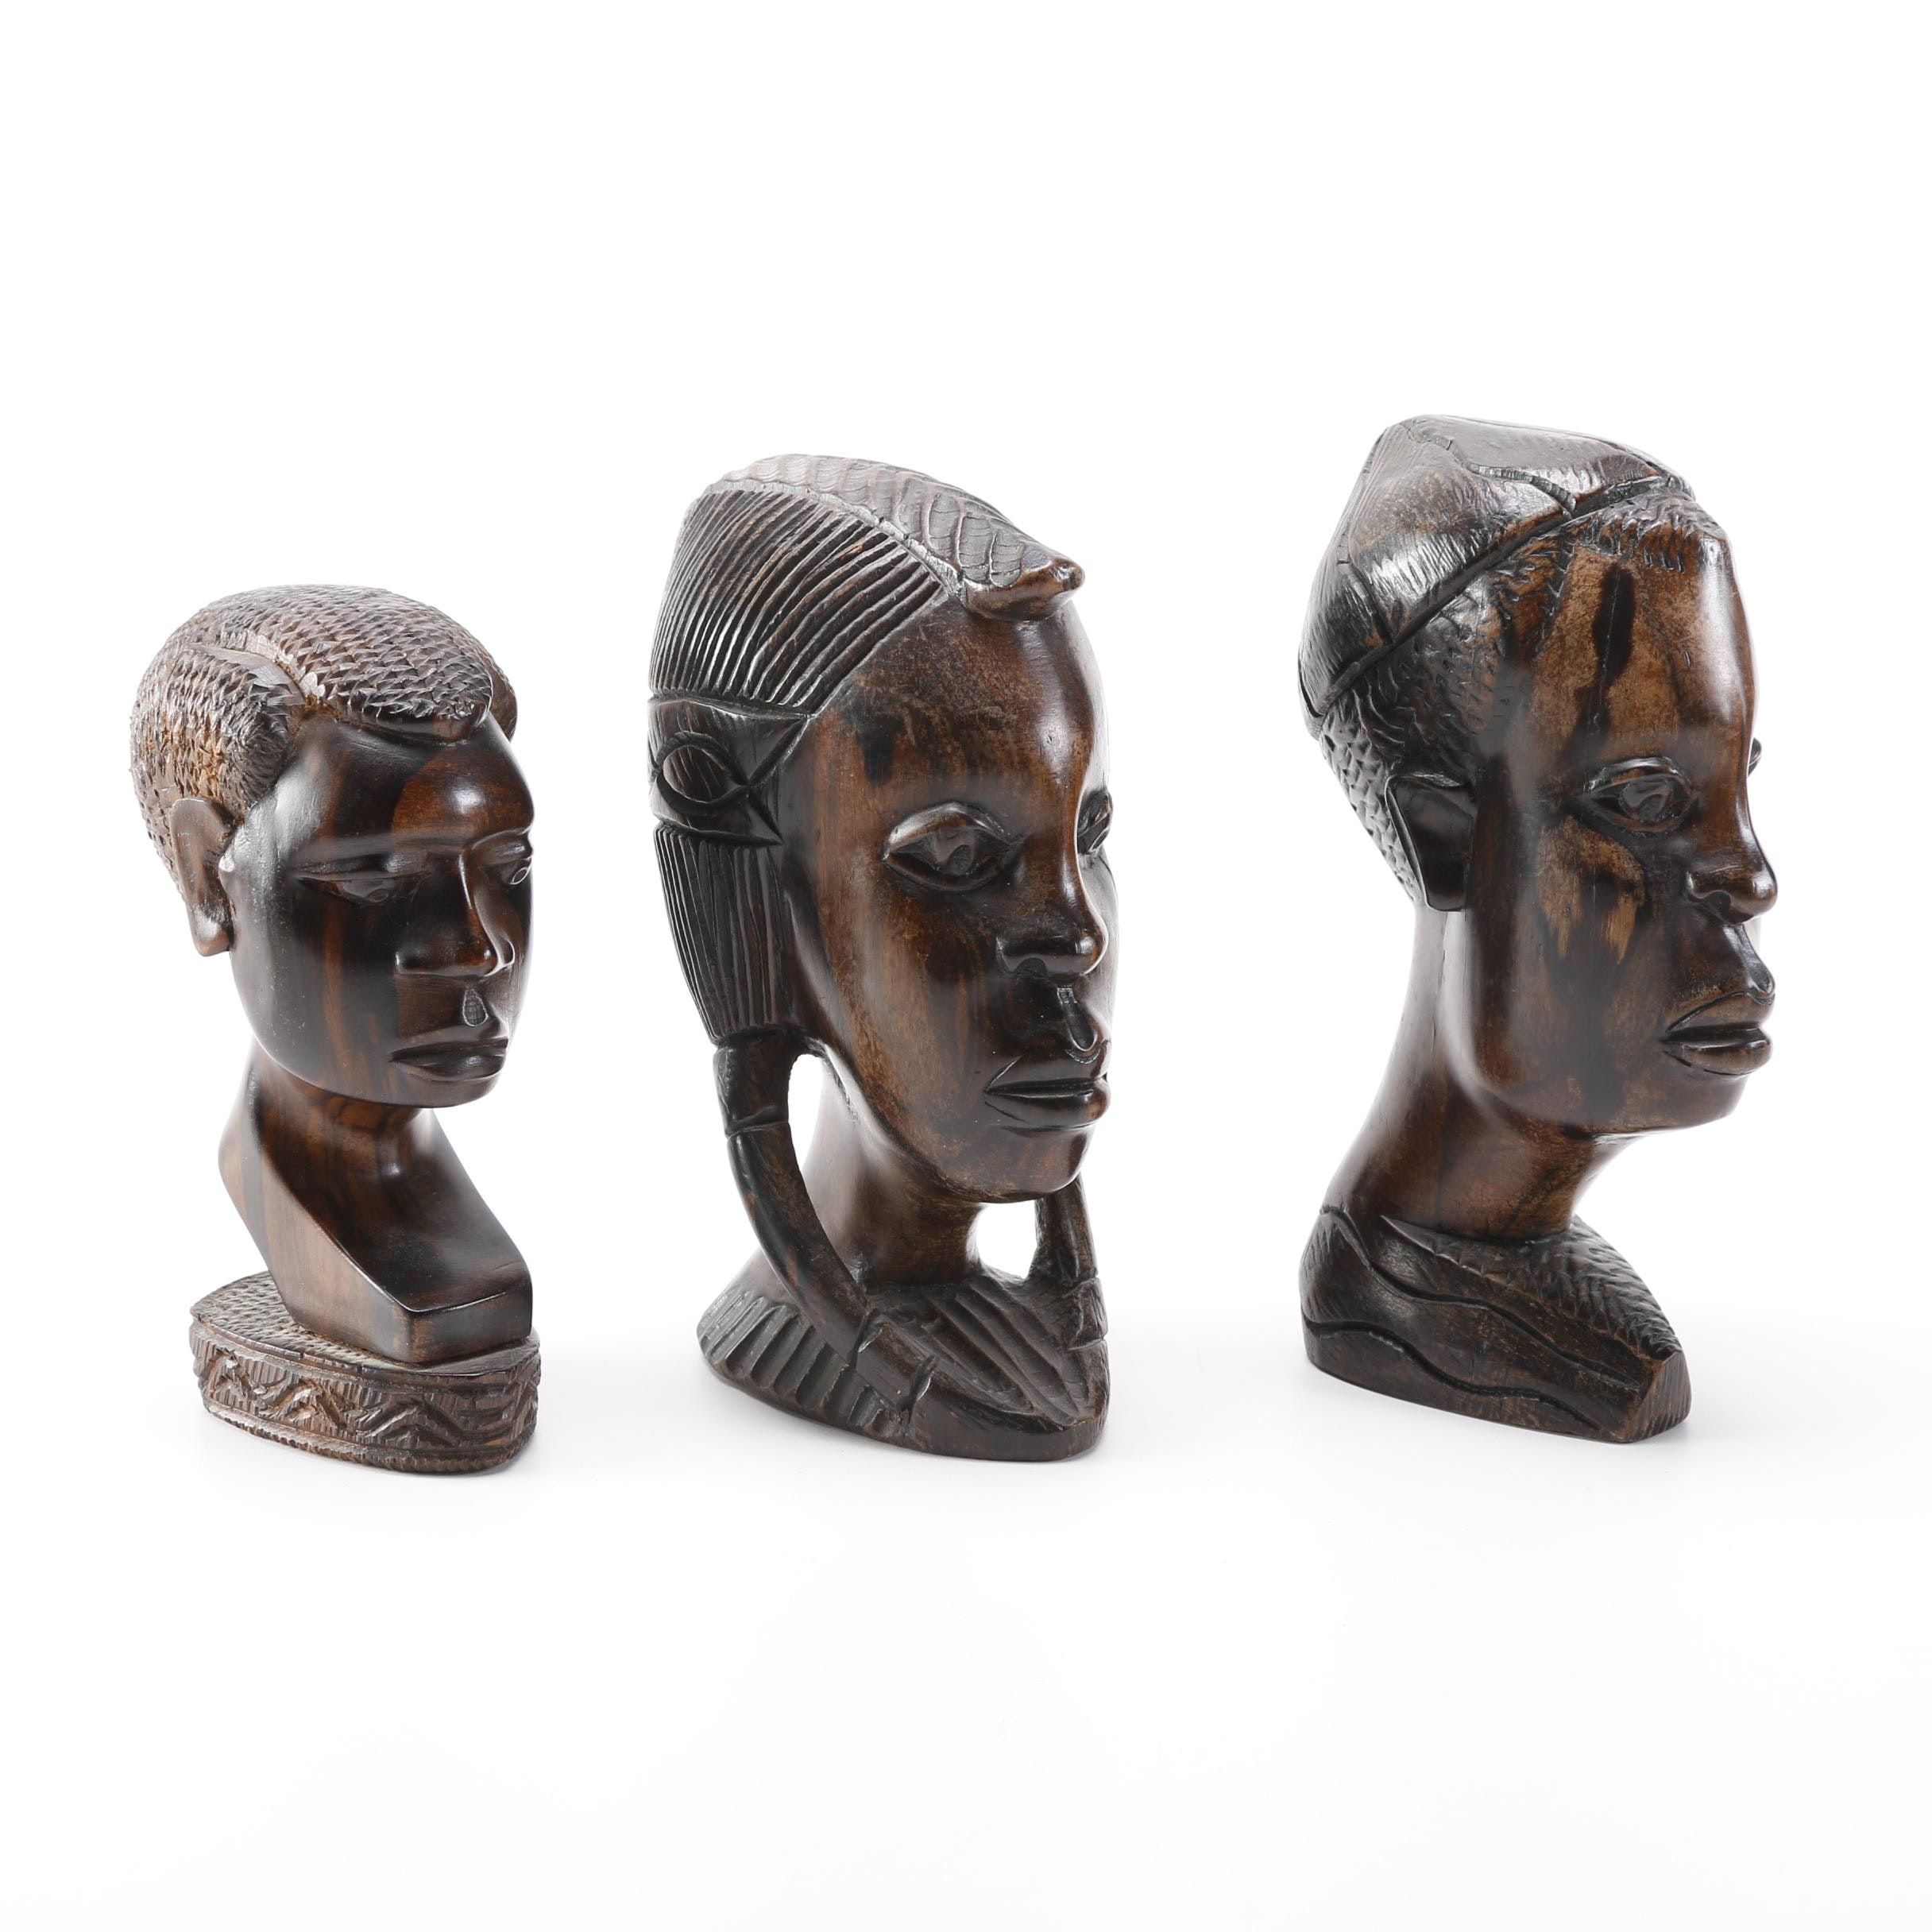 Hand Carved Wooden Busts